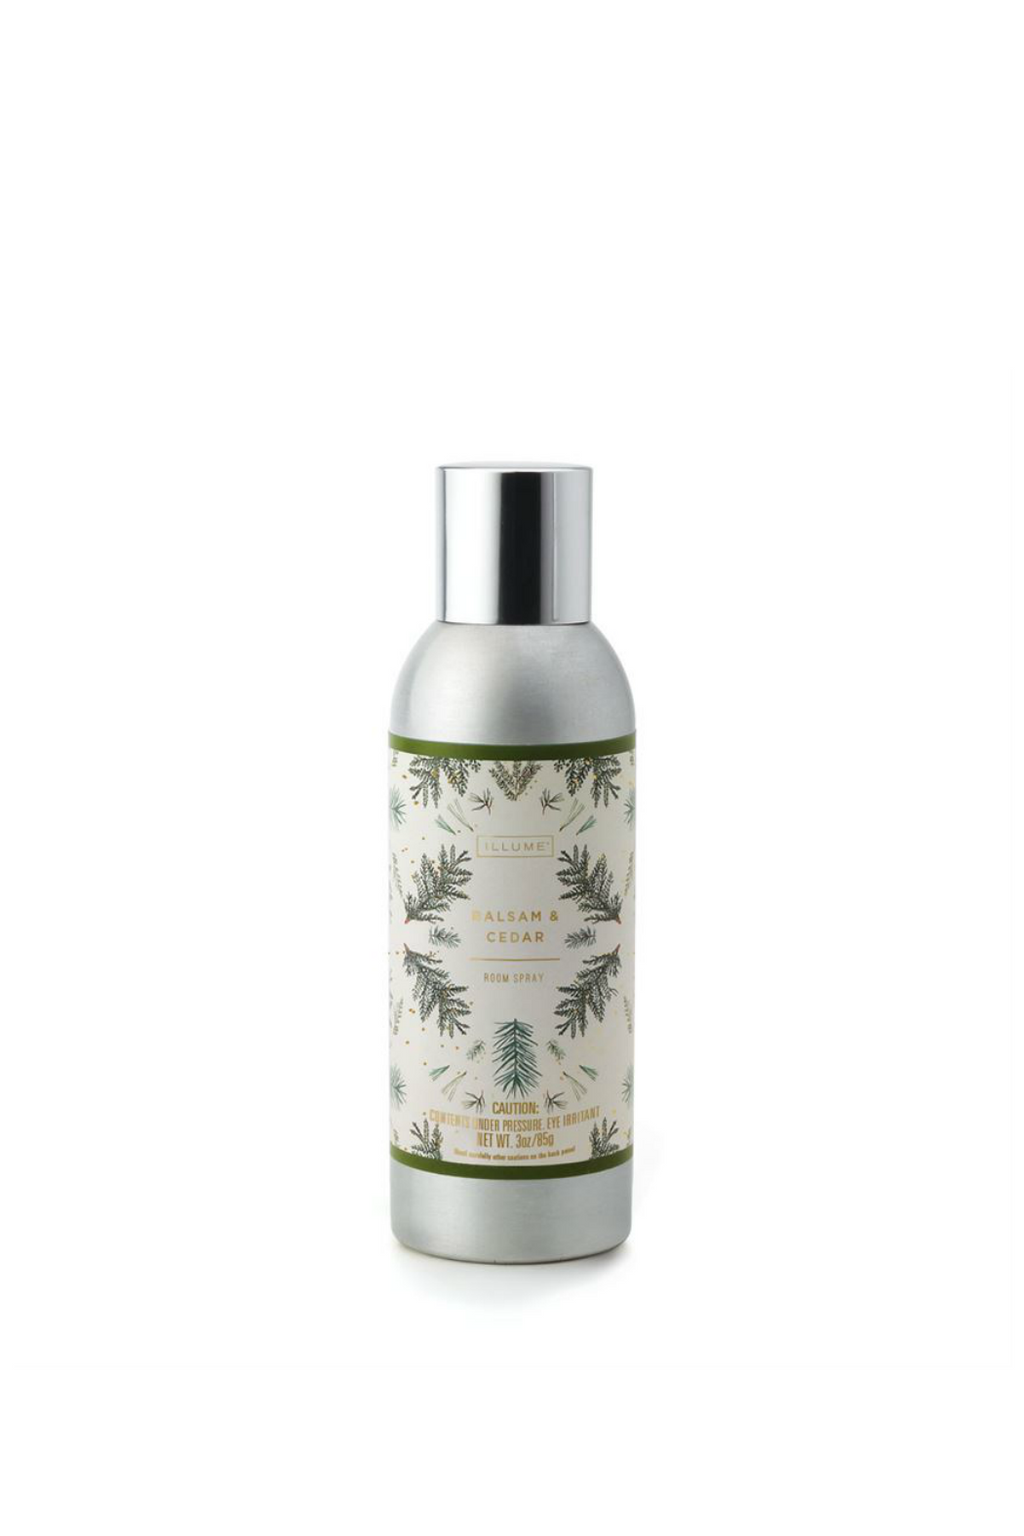 Illume Noble Room Spray Balsam & Cedar